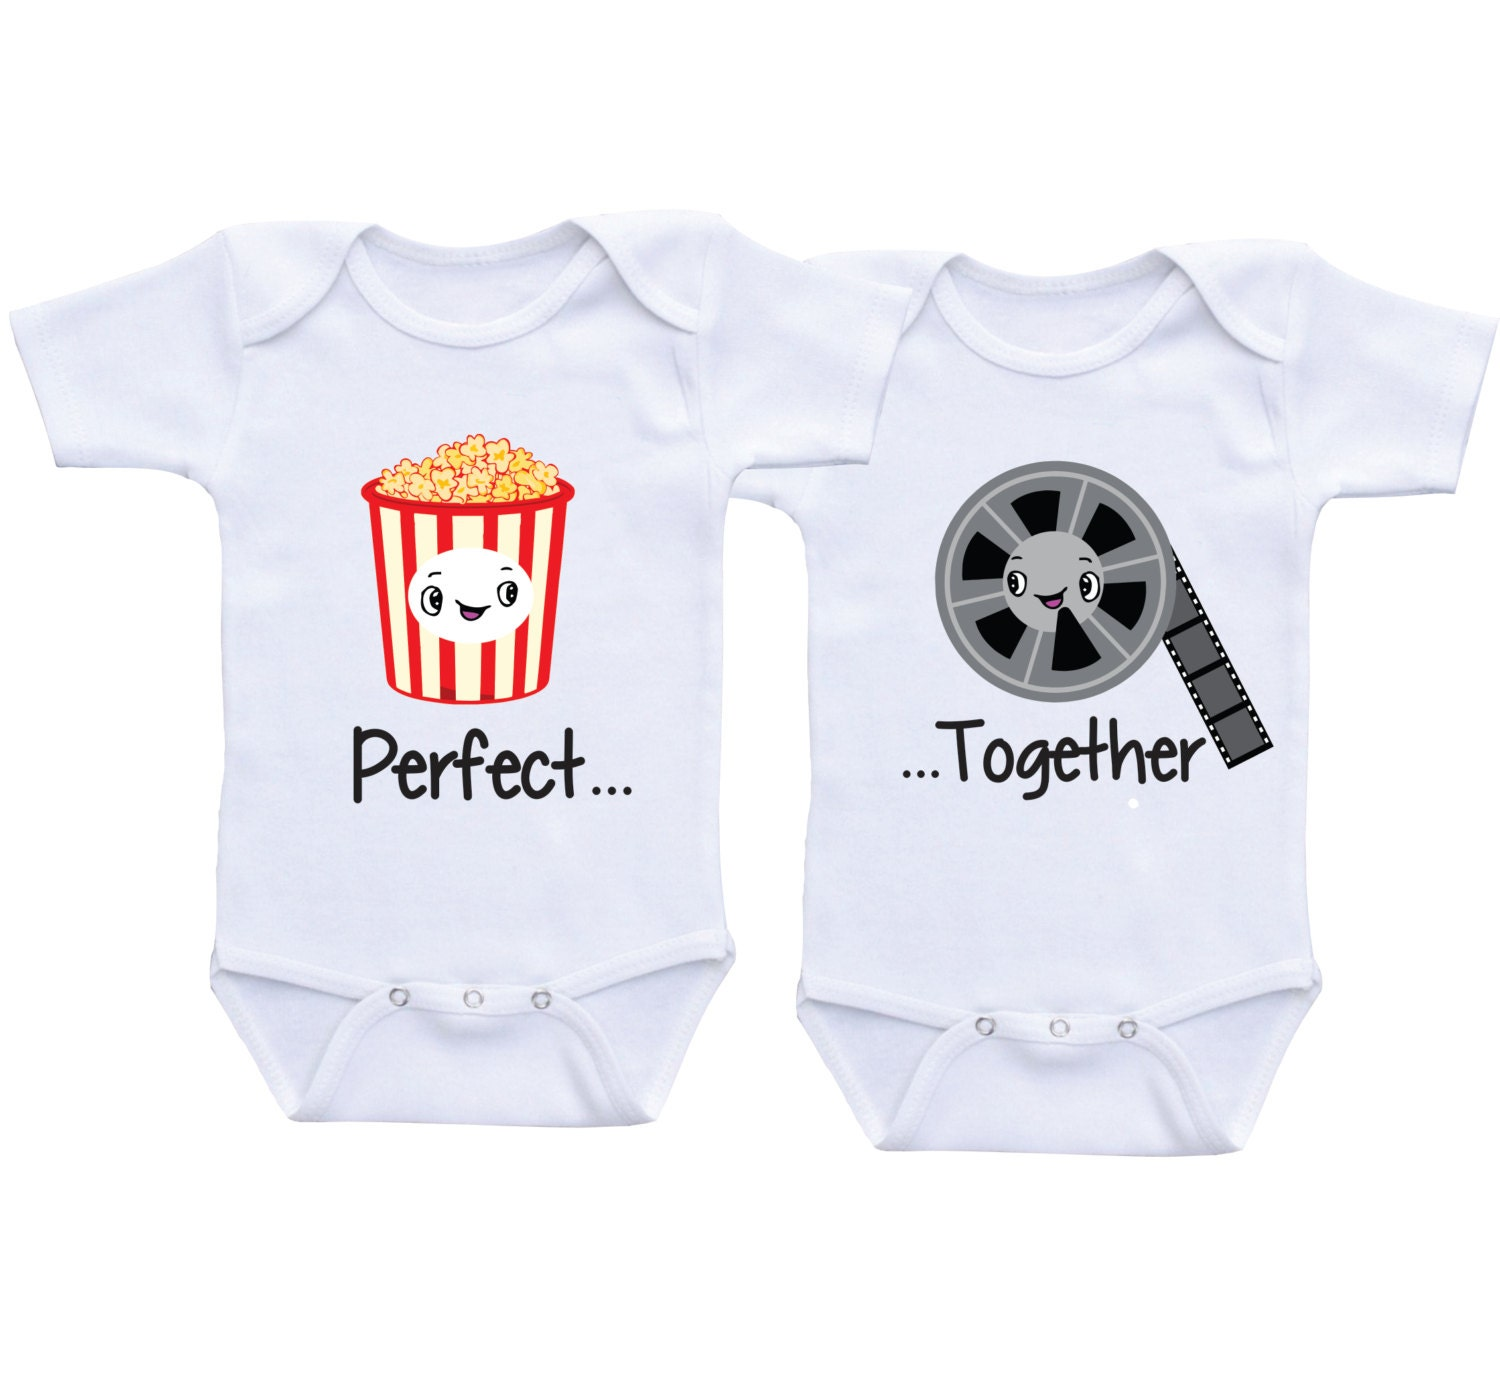 Twins baby shower twins outfits boy girl twins baby gifts